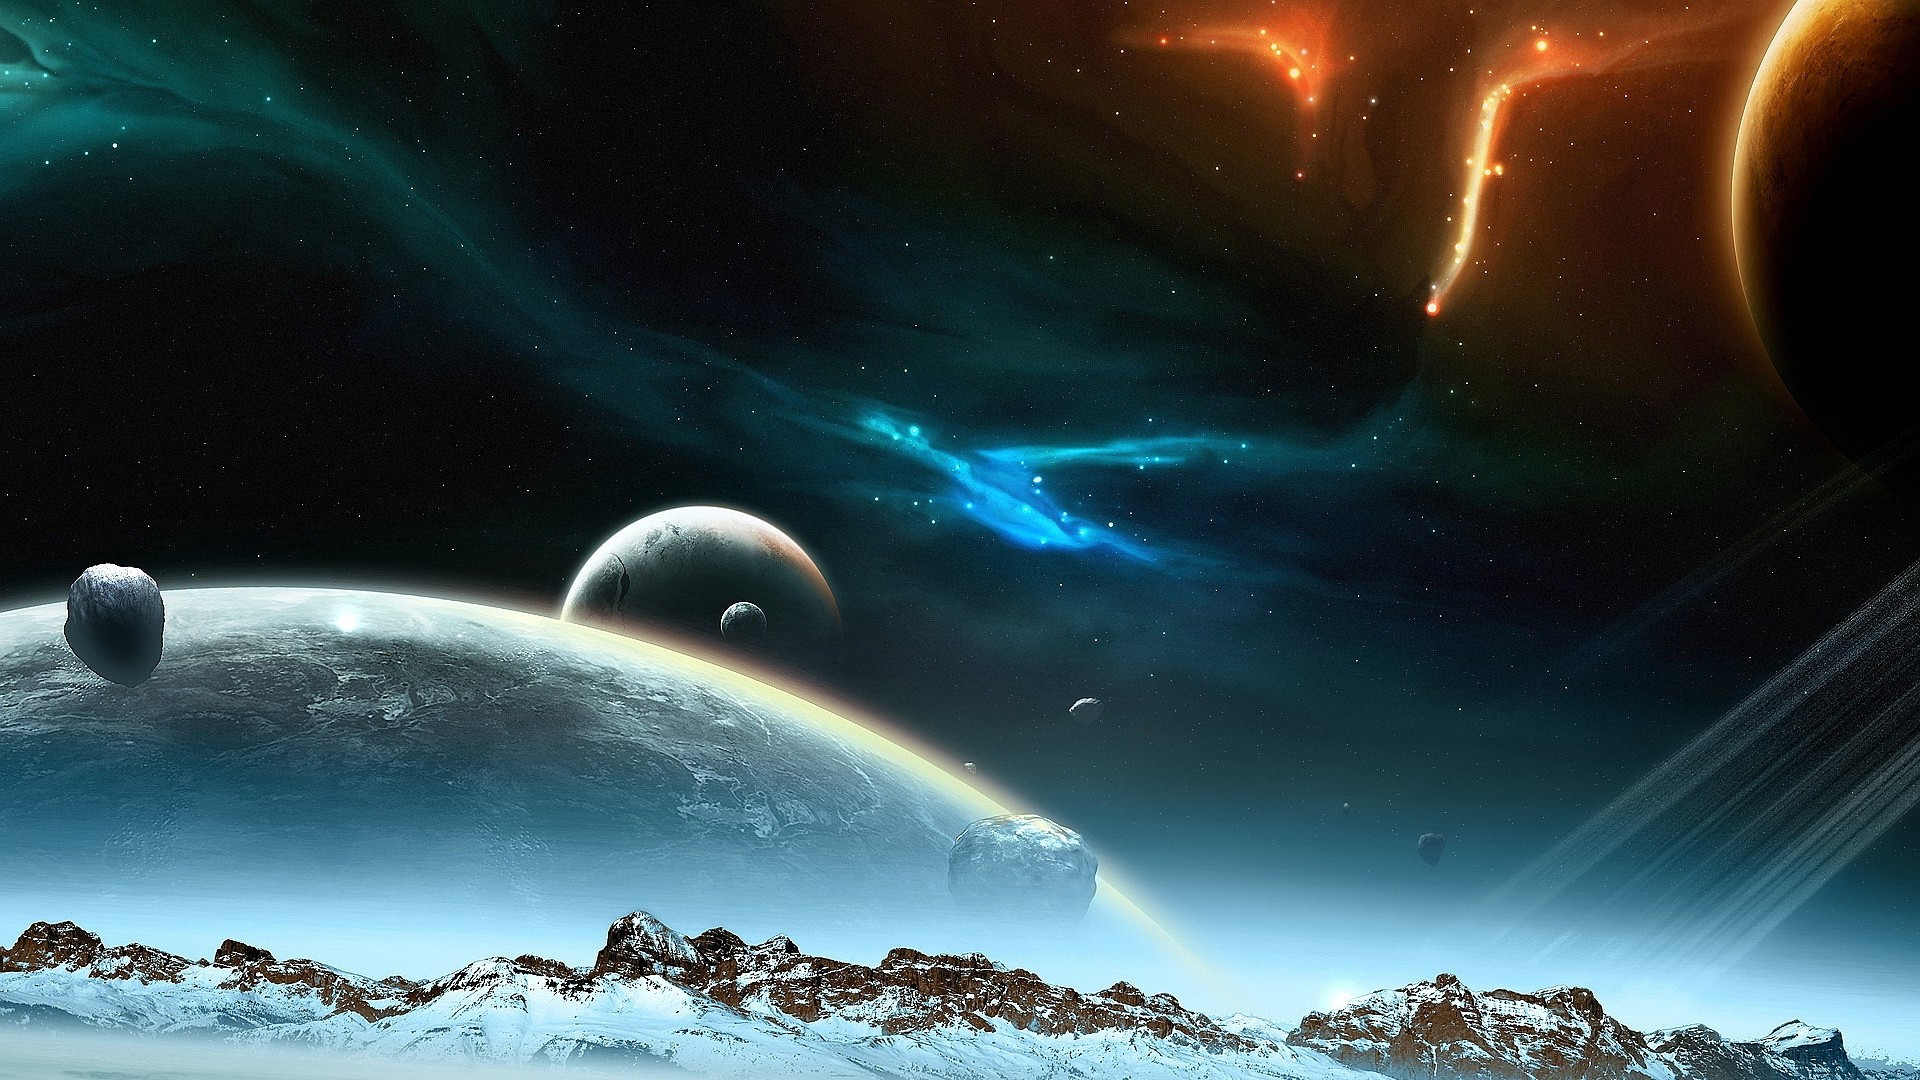 10 Latest Cool Laptop Backgrounds Space Full Hd 1920 1080: Cool Space Background Wallpapers (68+ Images